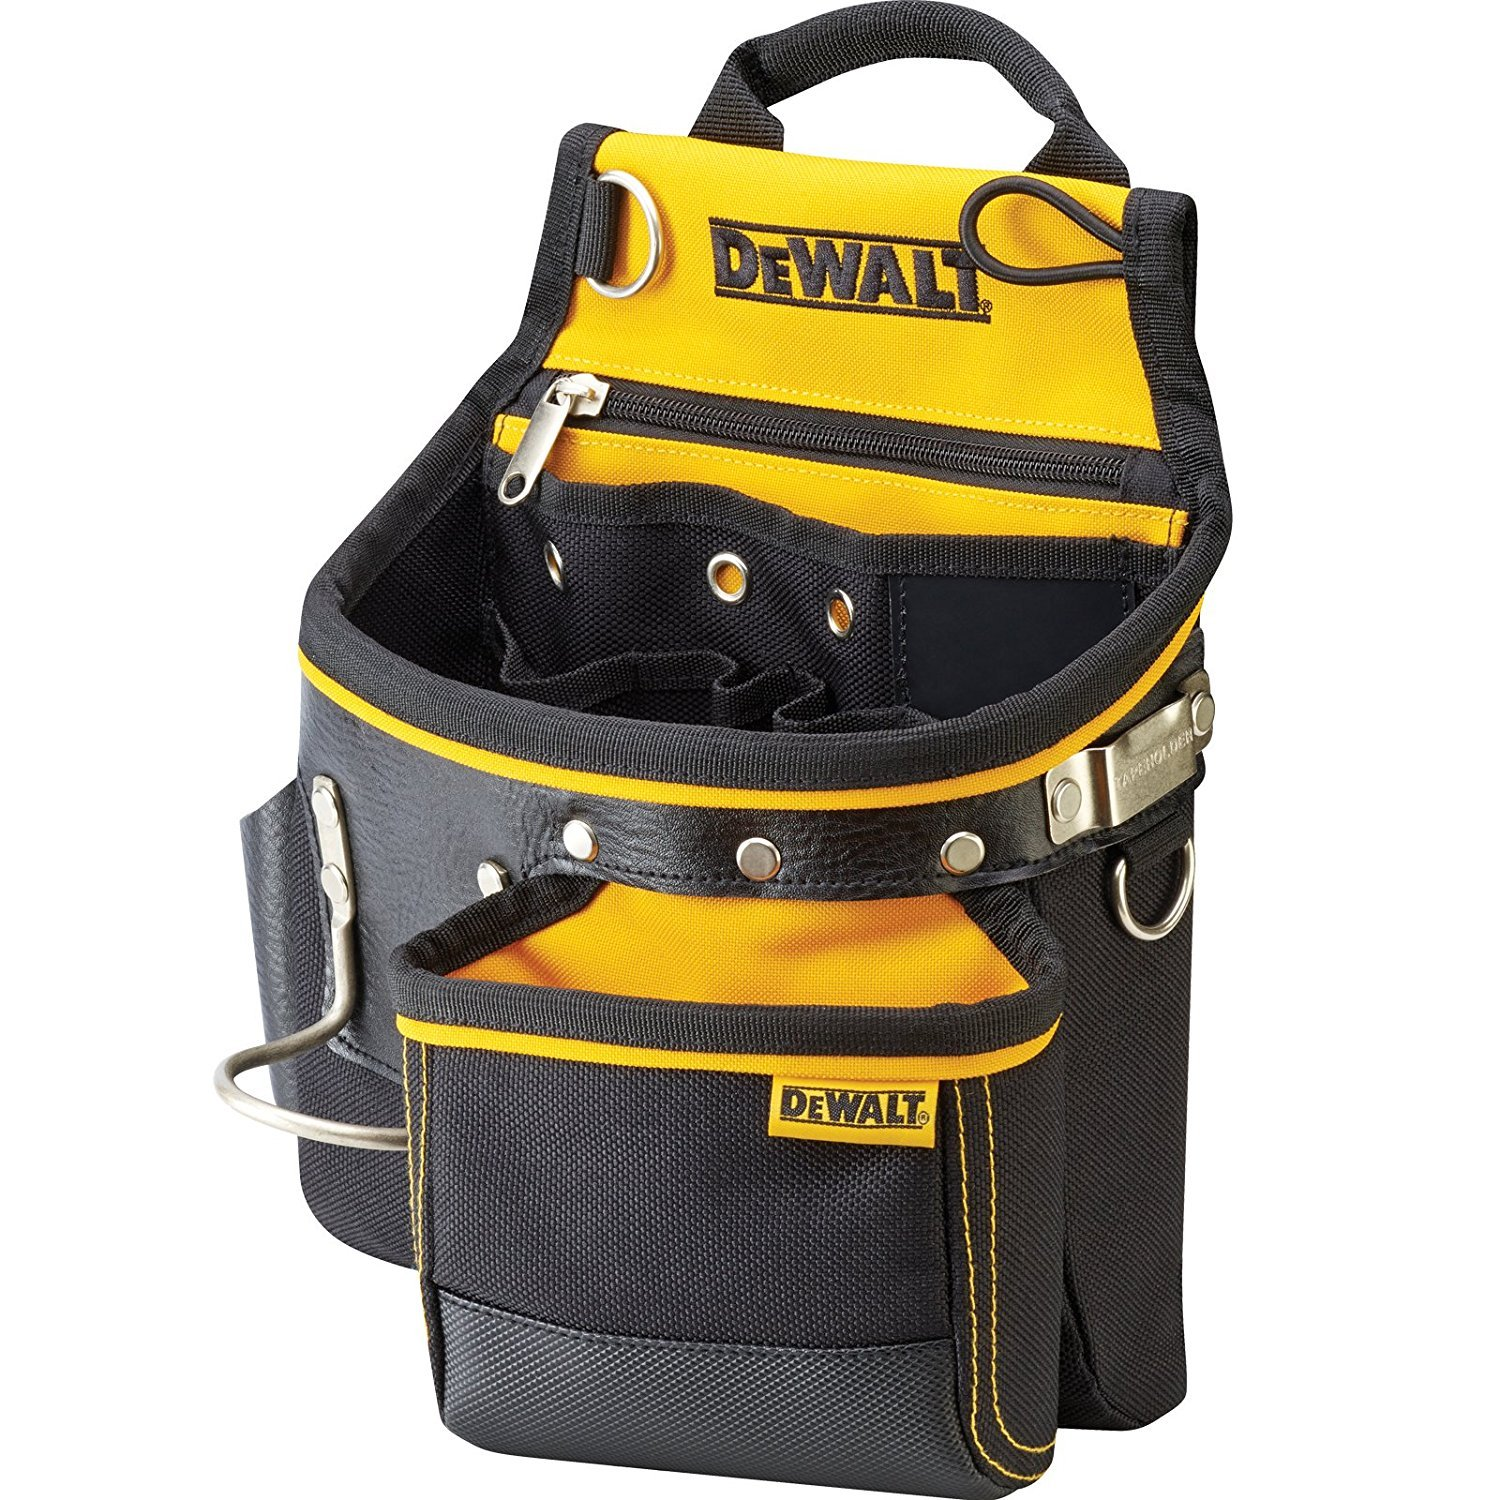 Dewalt DWST1-75652 Hammer and Nail Pouch, Yellow/Black